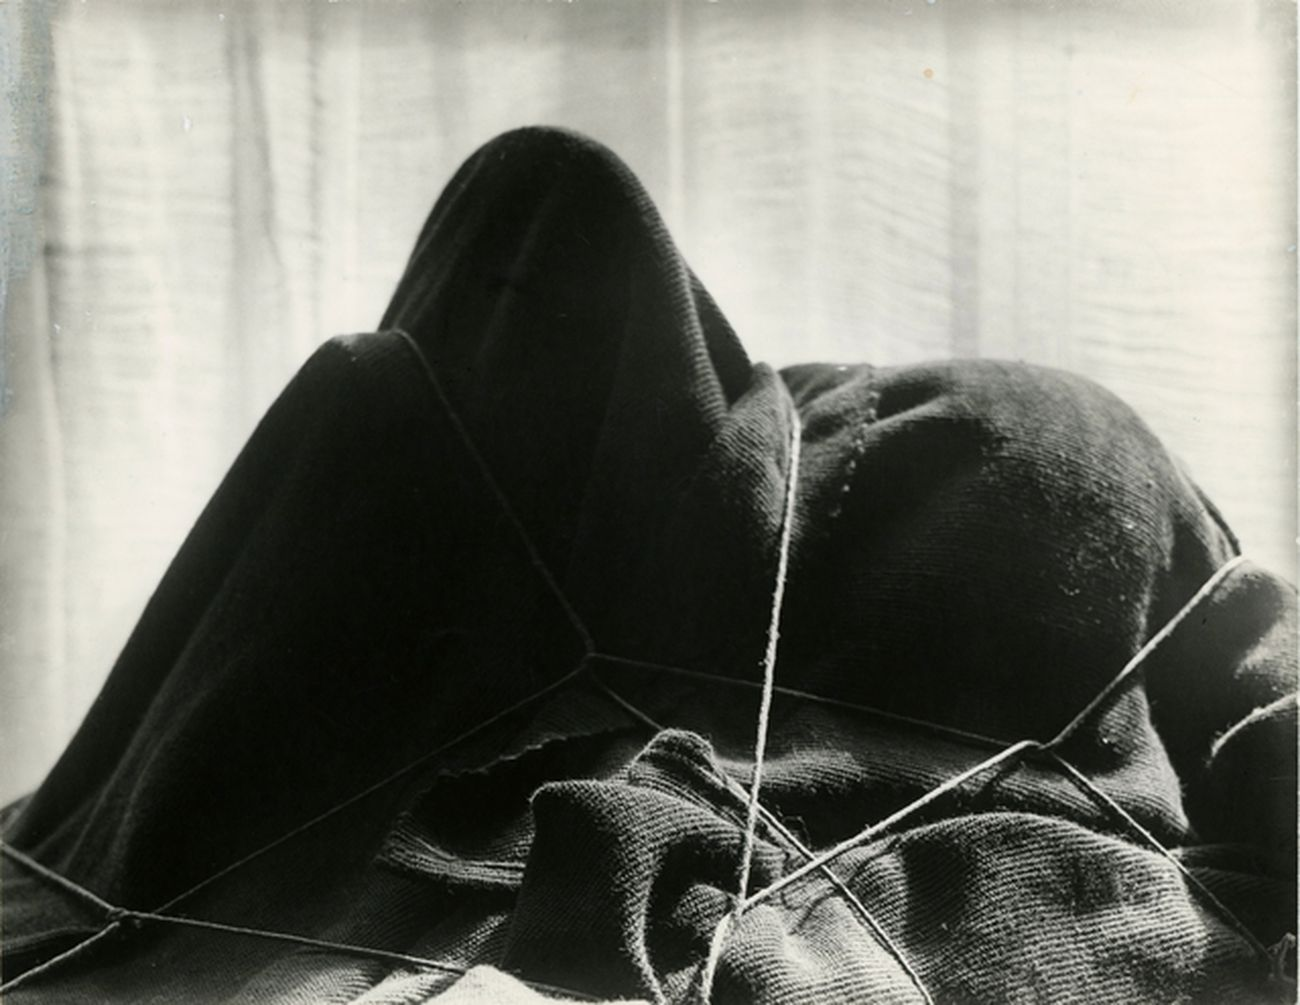 Man Ray, L'enigma di Isidore Ducasse, 1920. National Gallery of Australia, Canberra